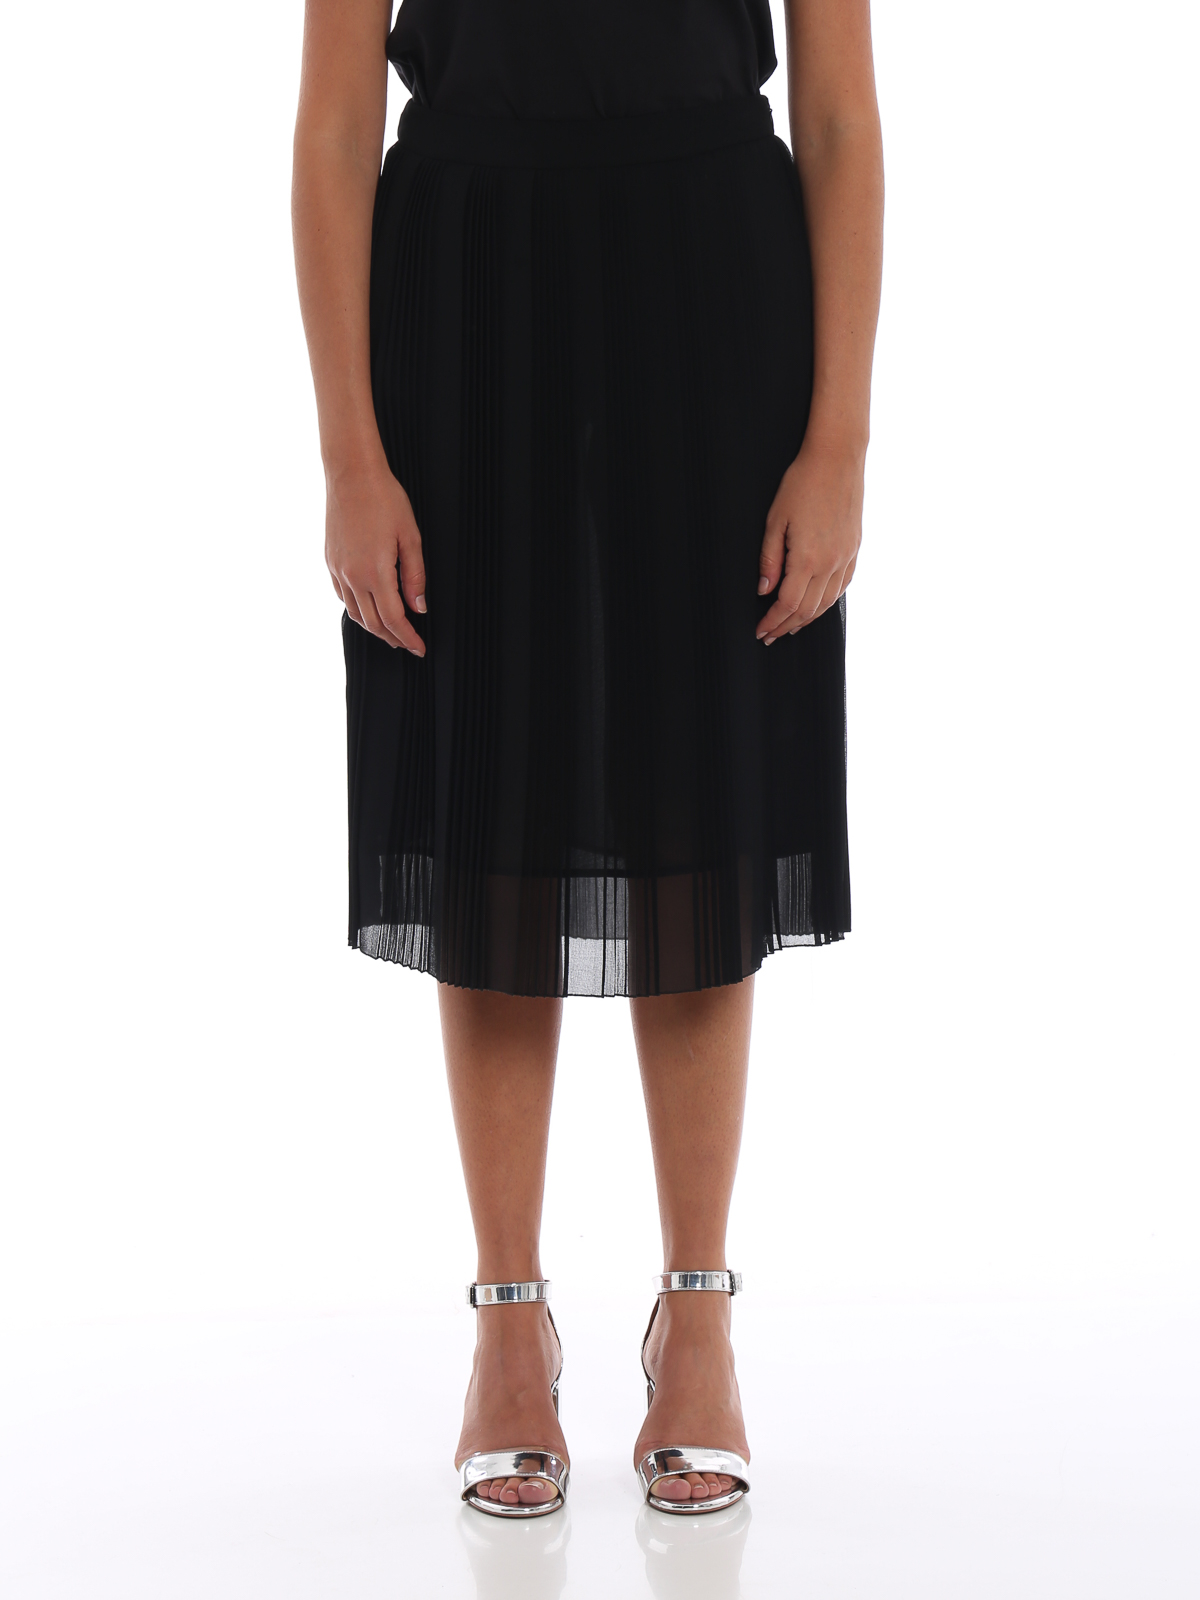 9a23b14c15b iKRIX-dondup-knee-length -skirts--midi-black-pleated-georgette-skirt-00000141290f00s003.jpg